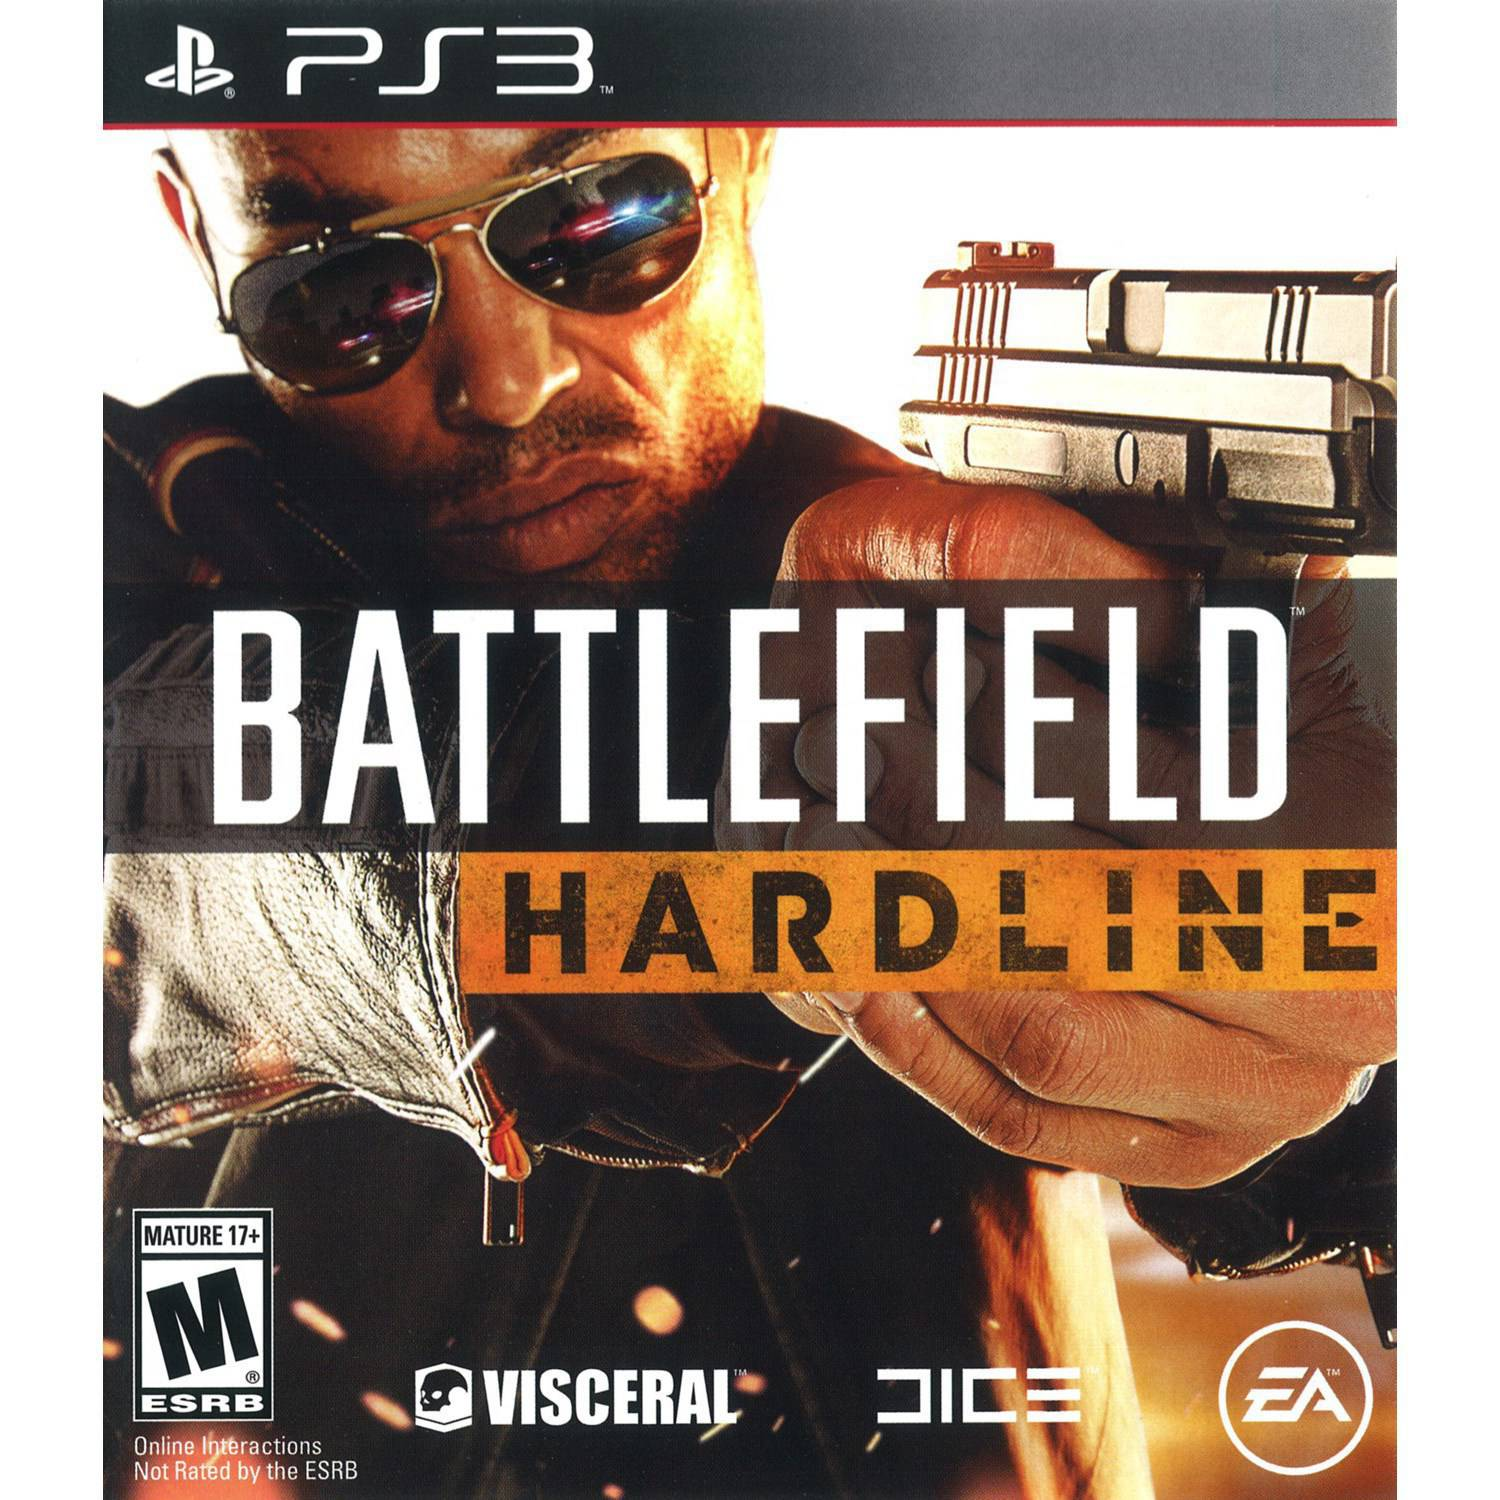 Battlefield: Hardline (PS3) - Pre-Owned